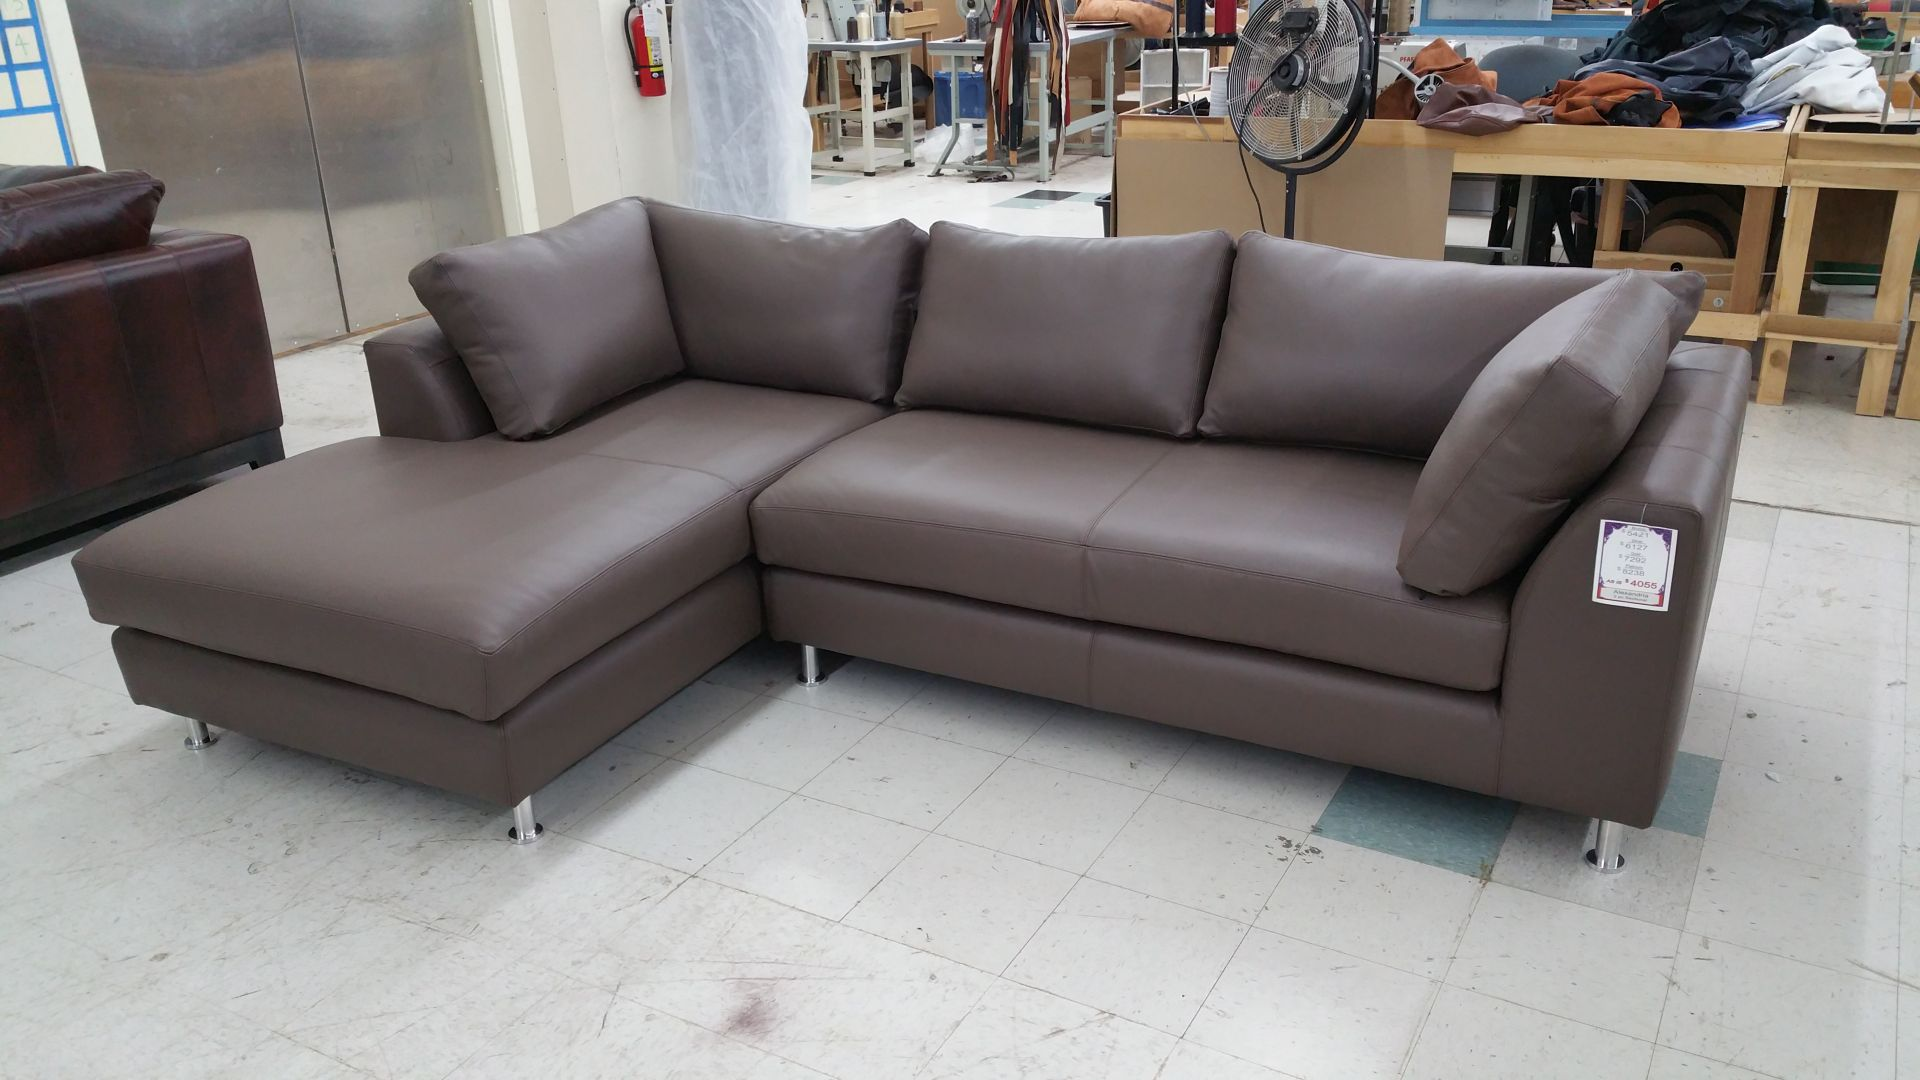 Sofa Italiano Outlet Outlet Sofa Adrian Sofa Graphite Value City Furniture